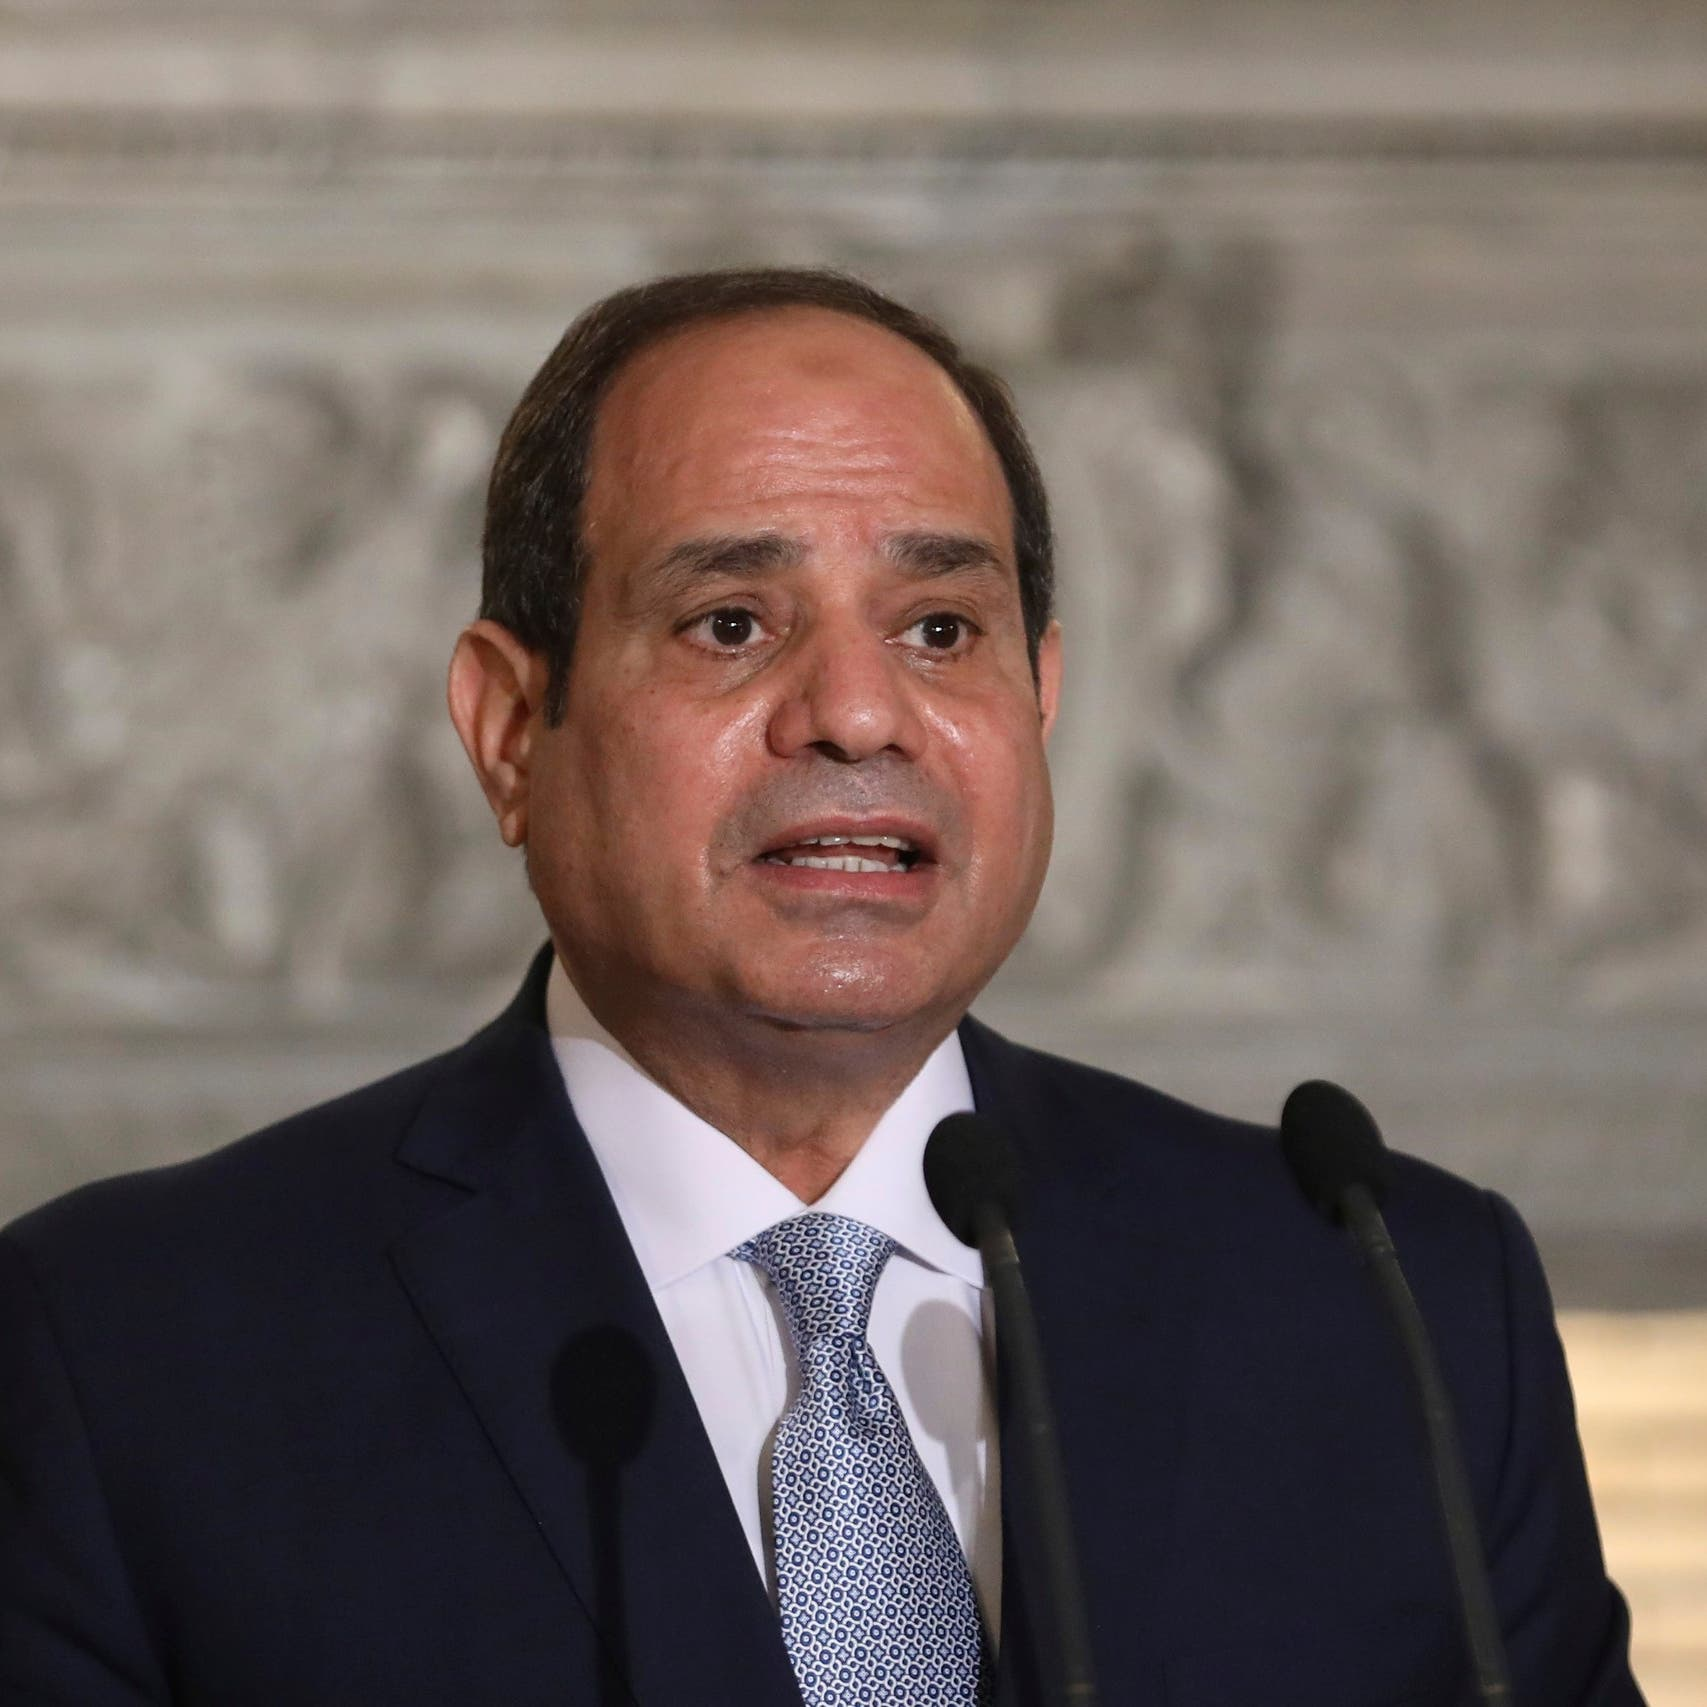 Egypt's President Sisi is moving to thaw relations with Israel, reap economic rewards